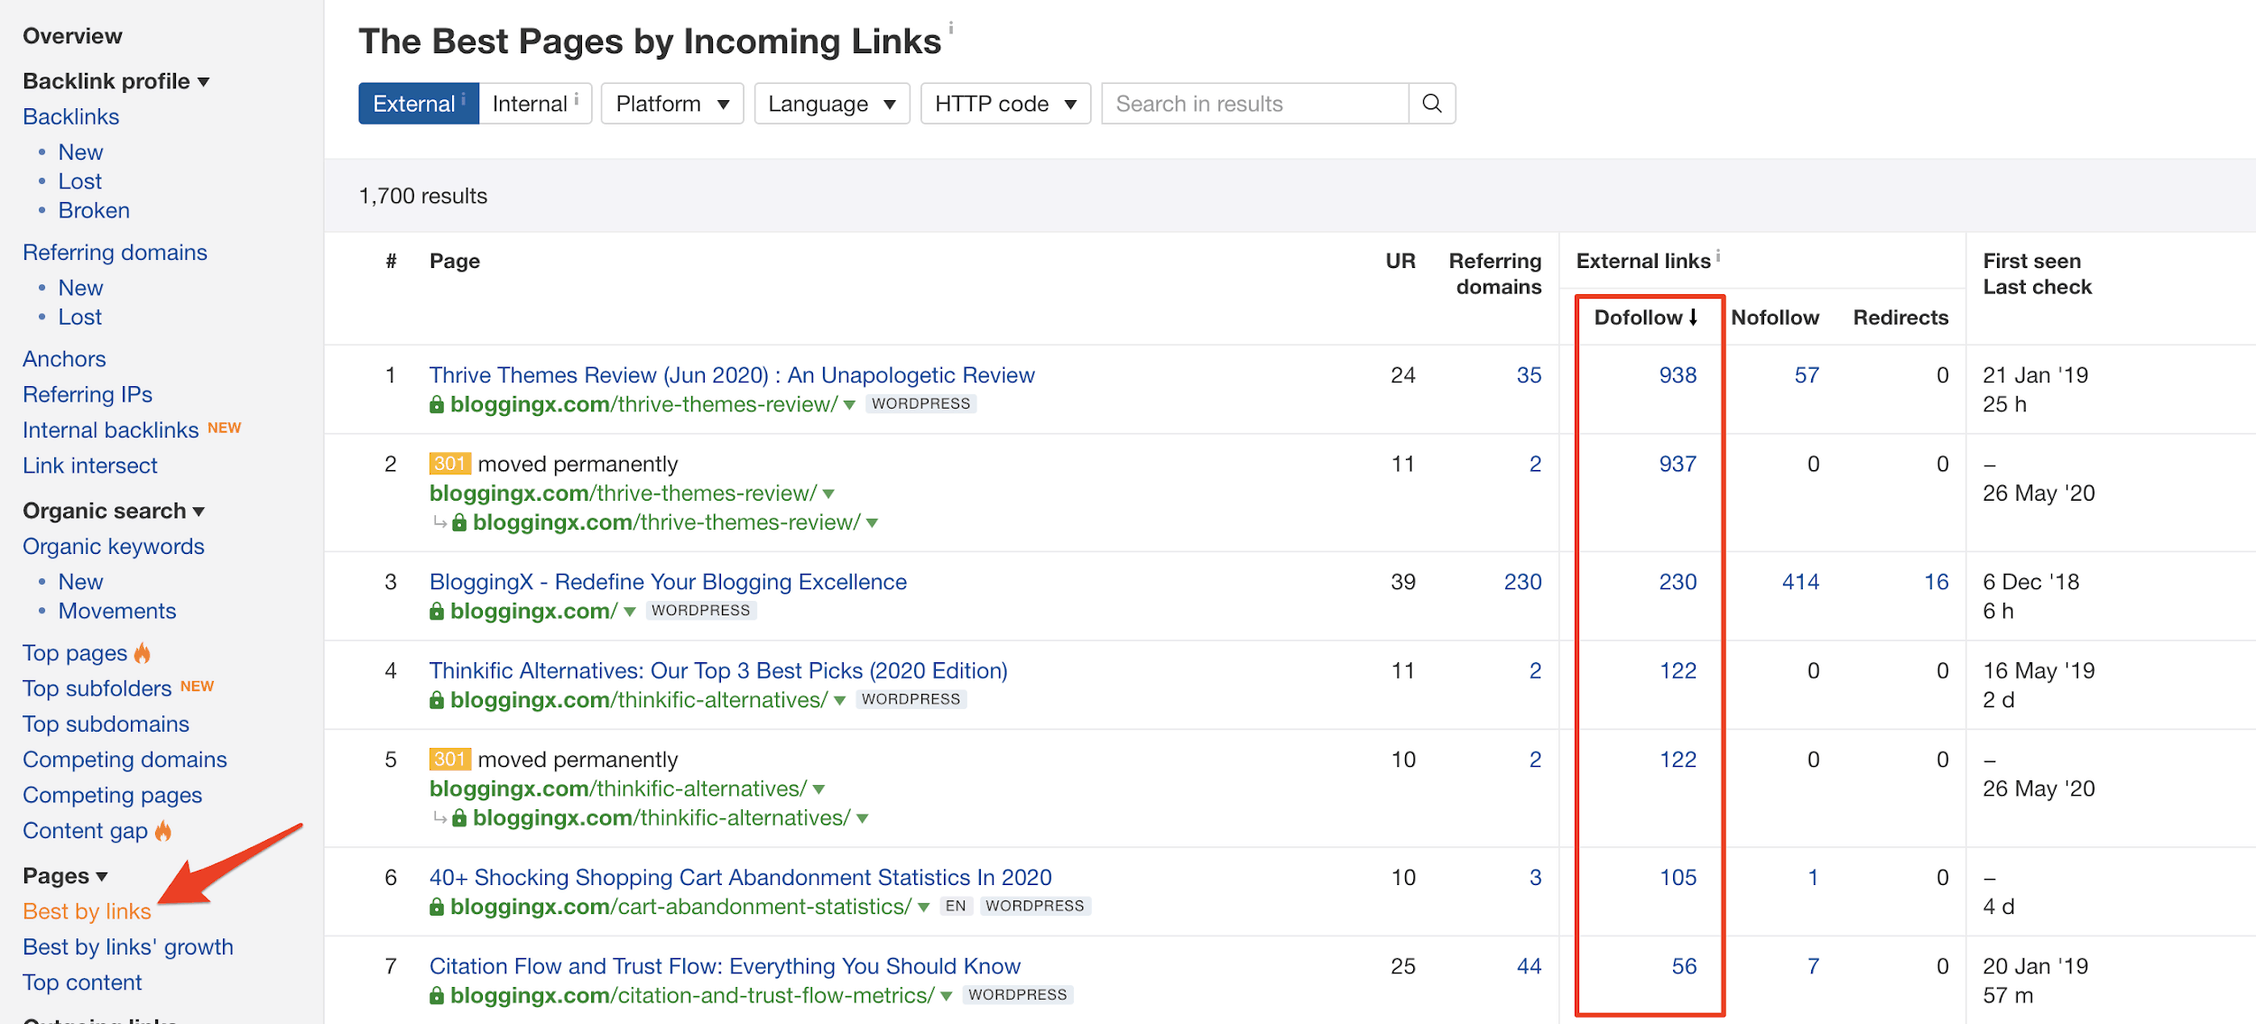 Ahrefs top pages by internal links